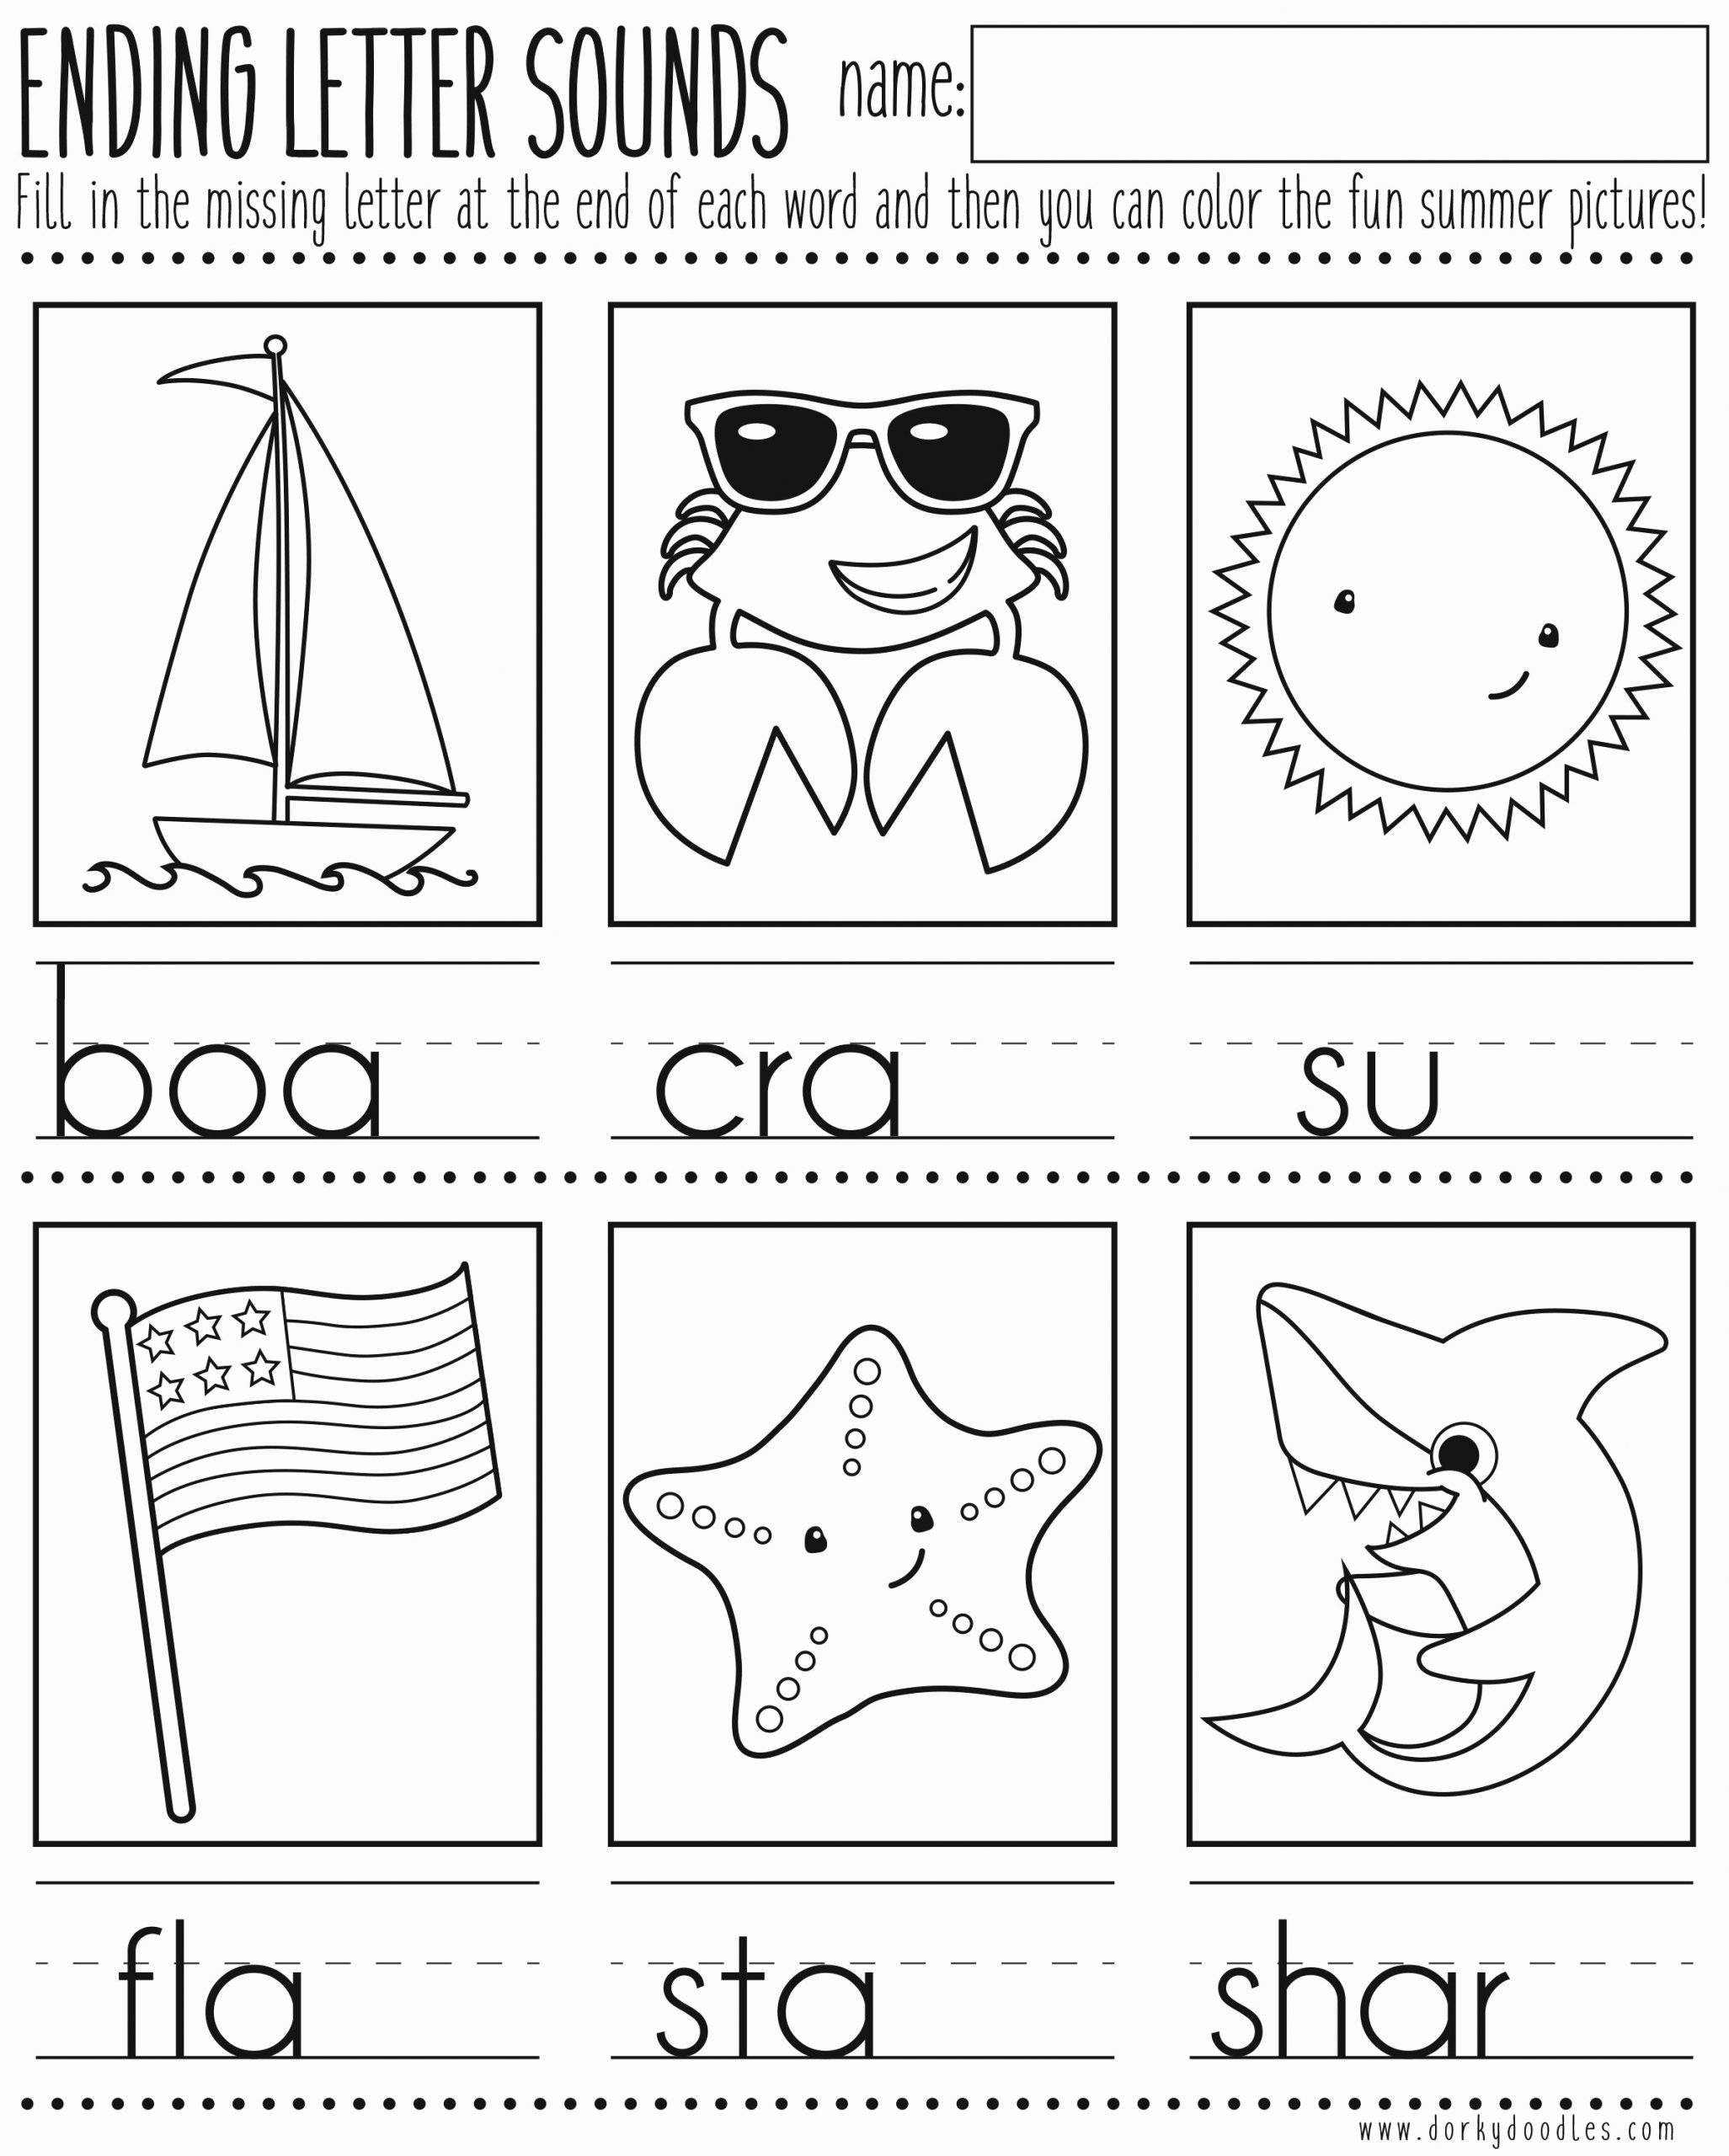 Ending sound Worksheets Free Beautiful Ending Letter sounds Printable Worksheet – Dorky Doodles